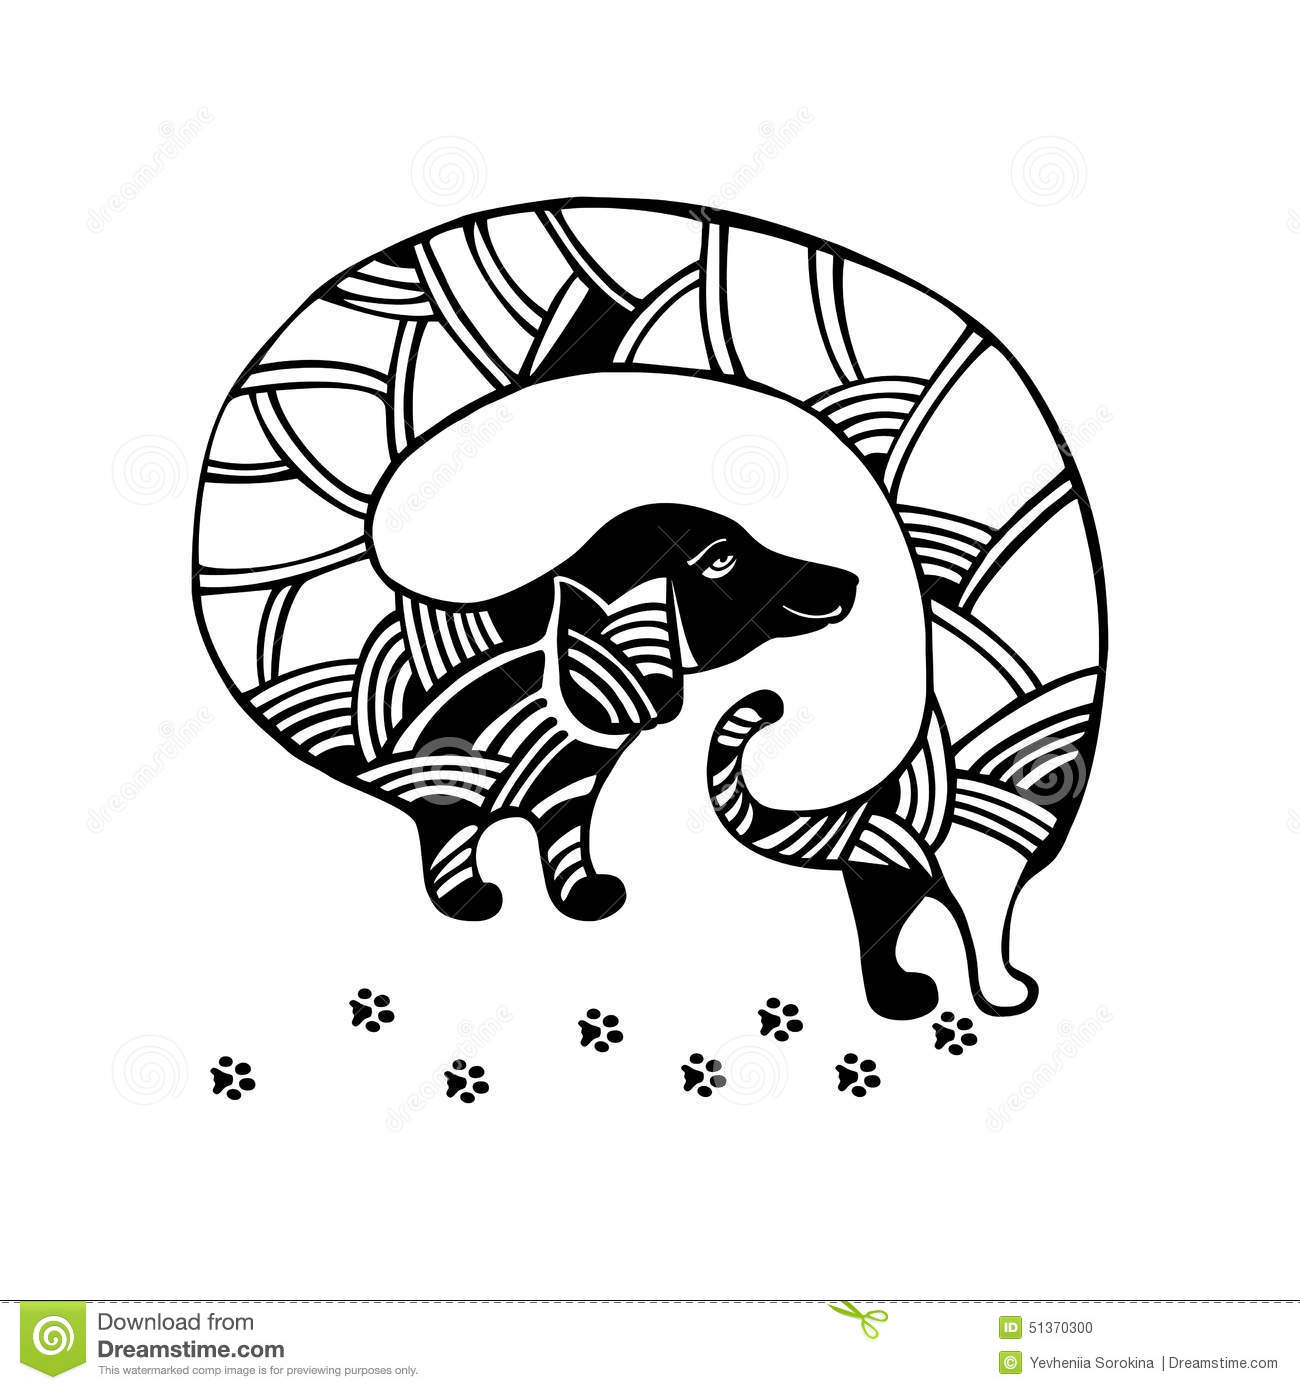 Dachshund Dog Vector Cartoon Illustration Stock Vector